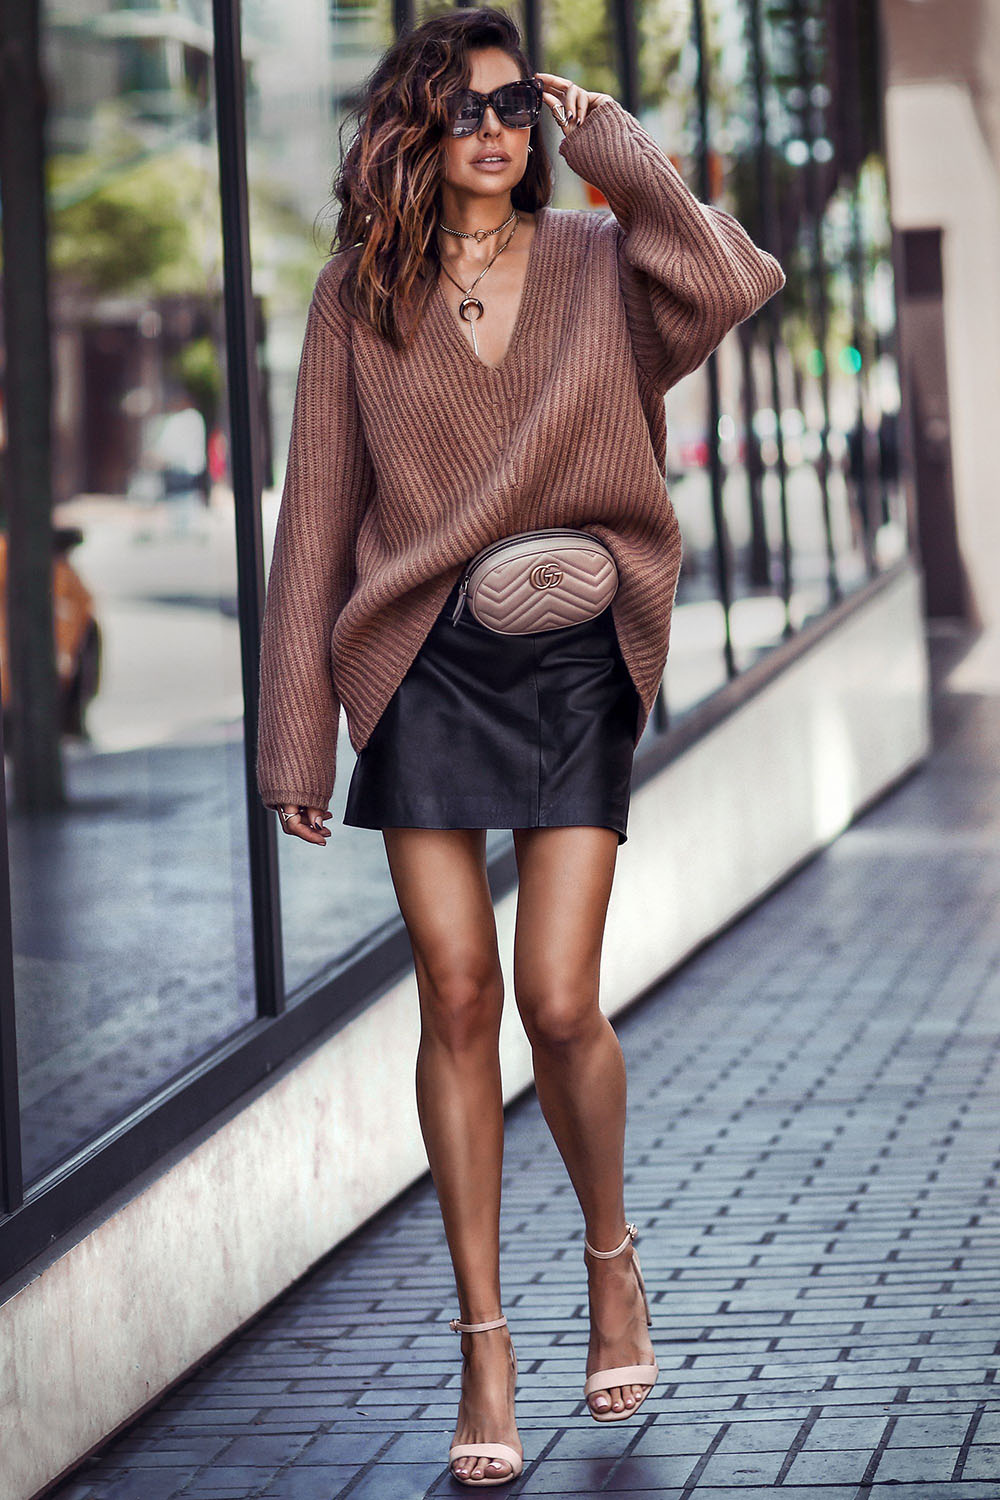 Brown outfit style with leather dress handbag, fashion accessory